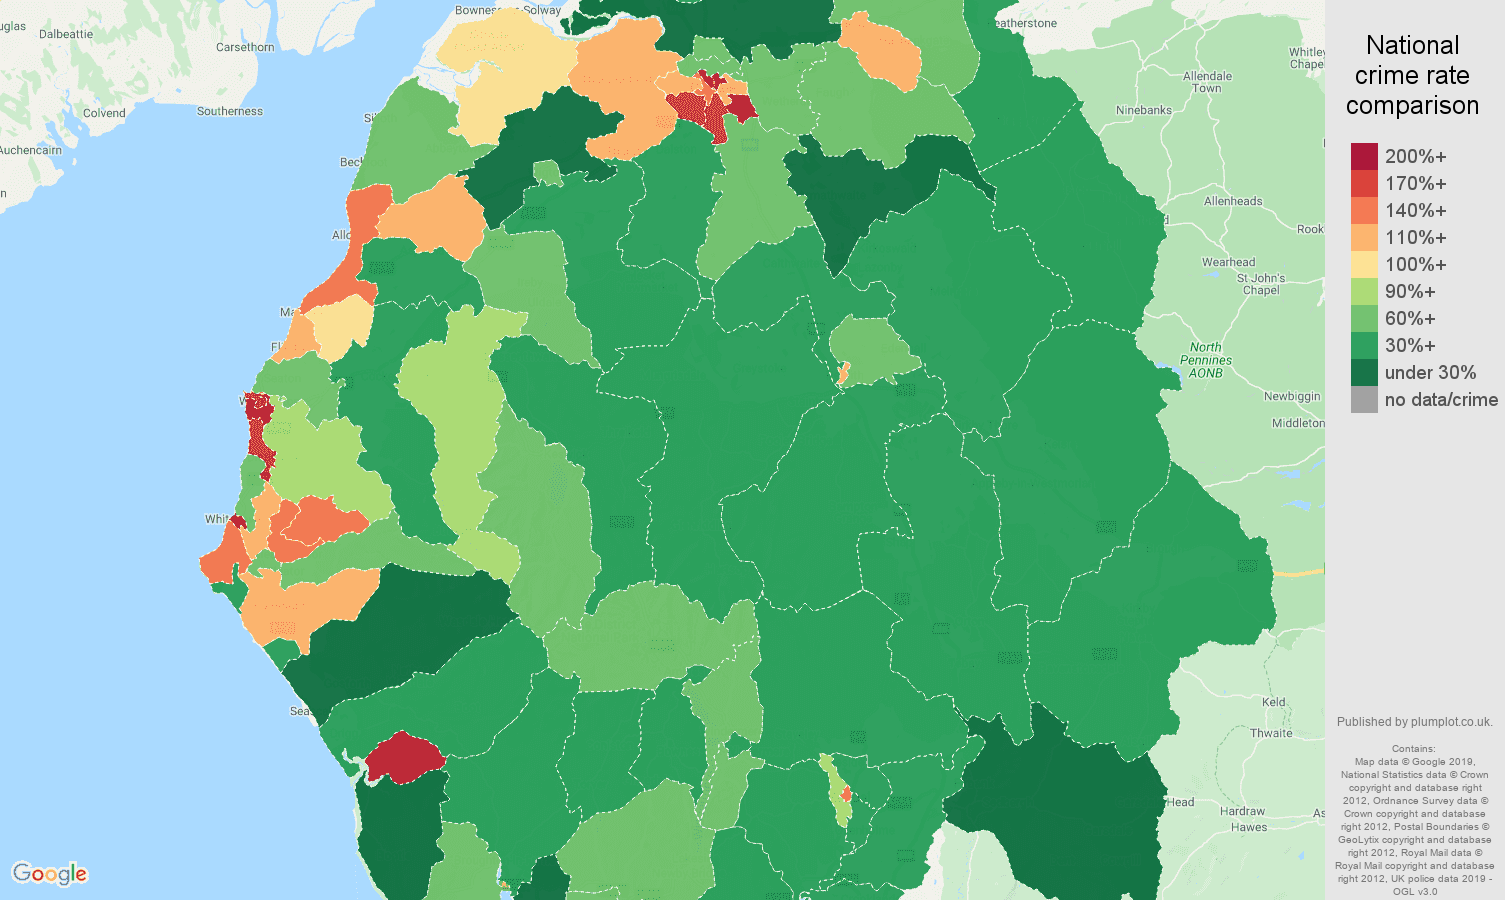 Cumbria public order crime rate comparison map